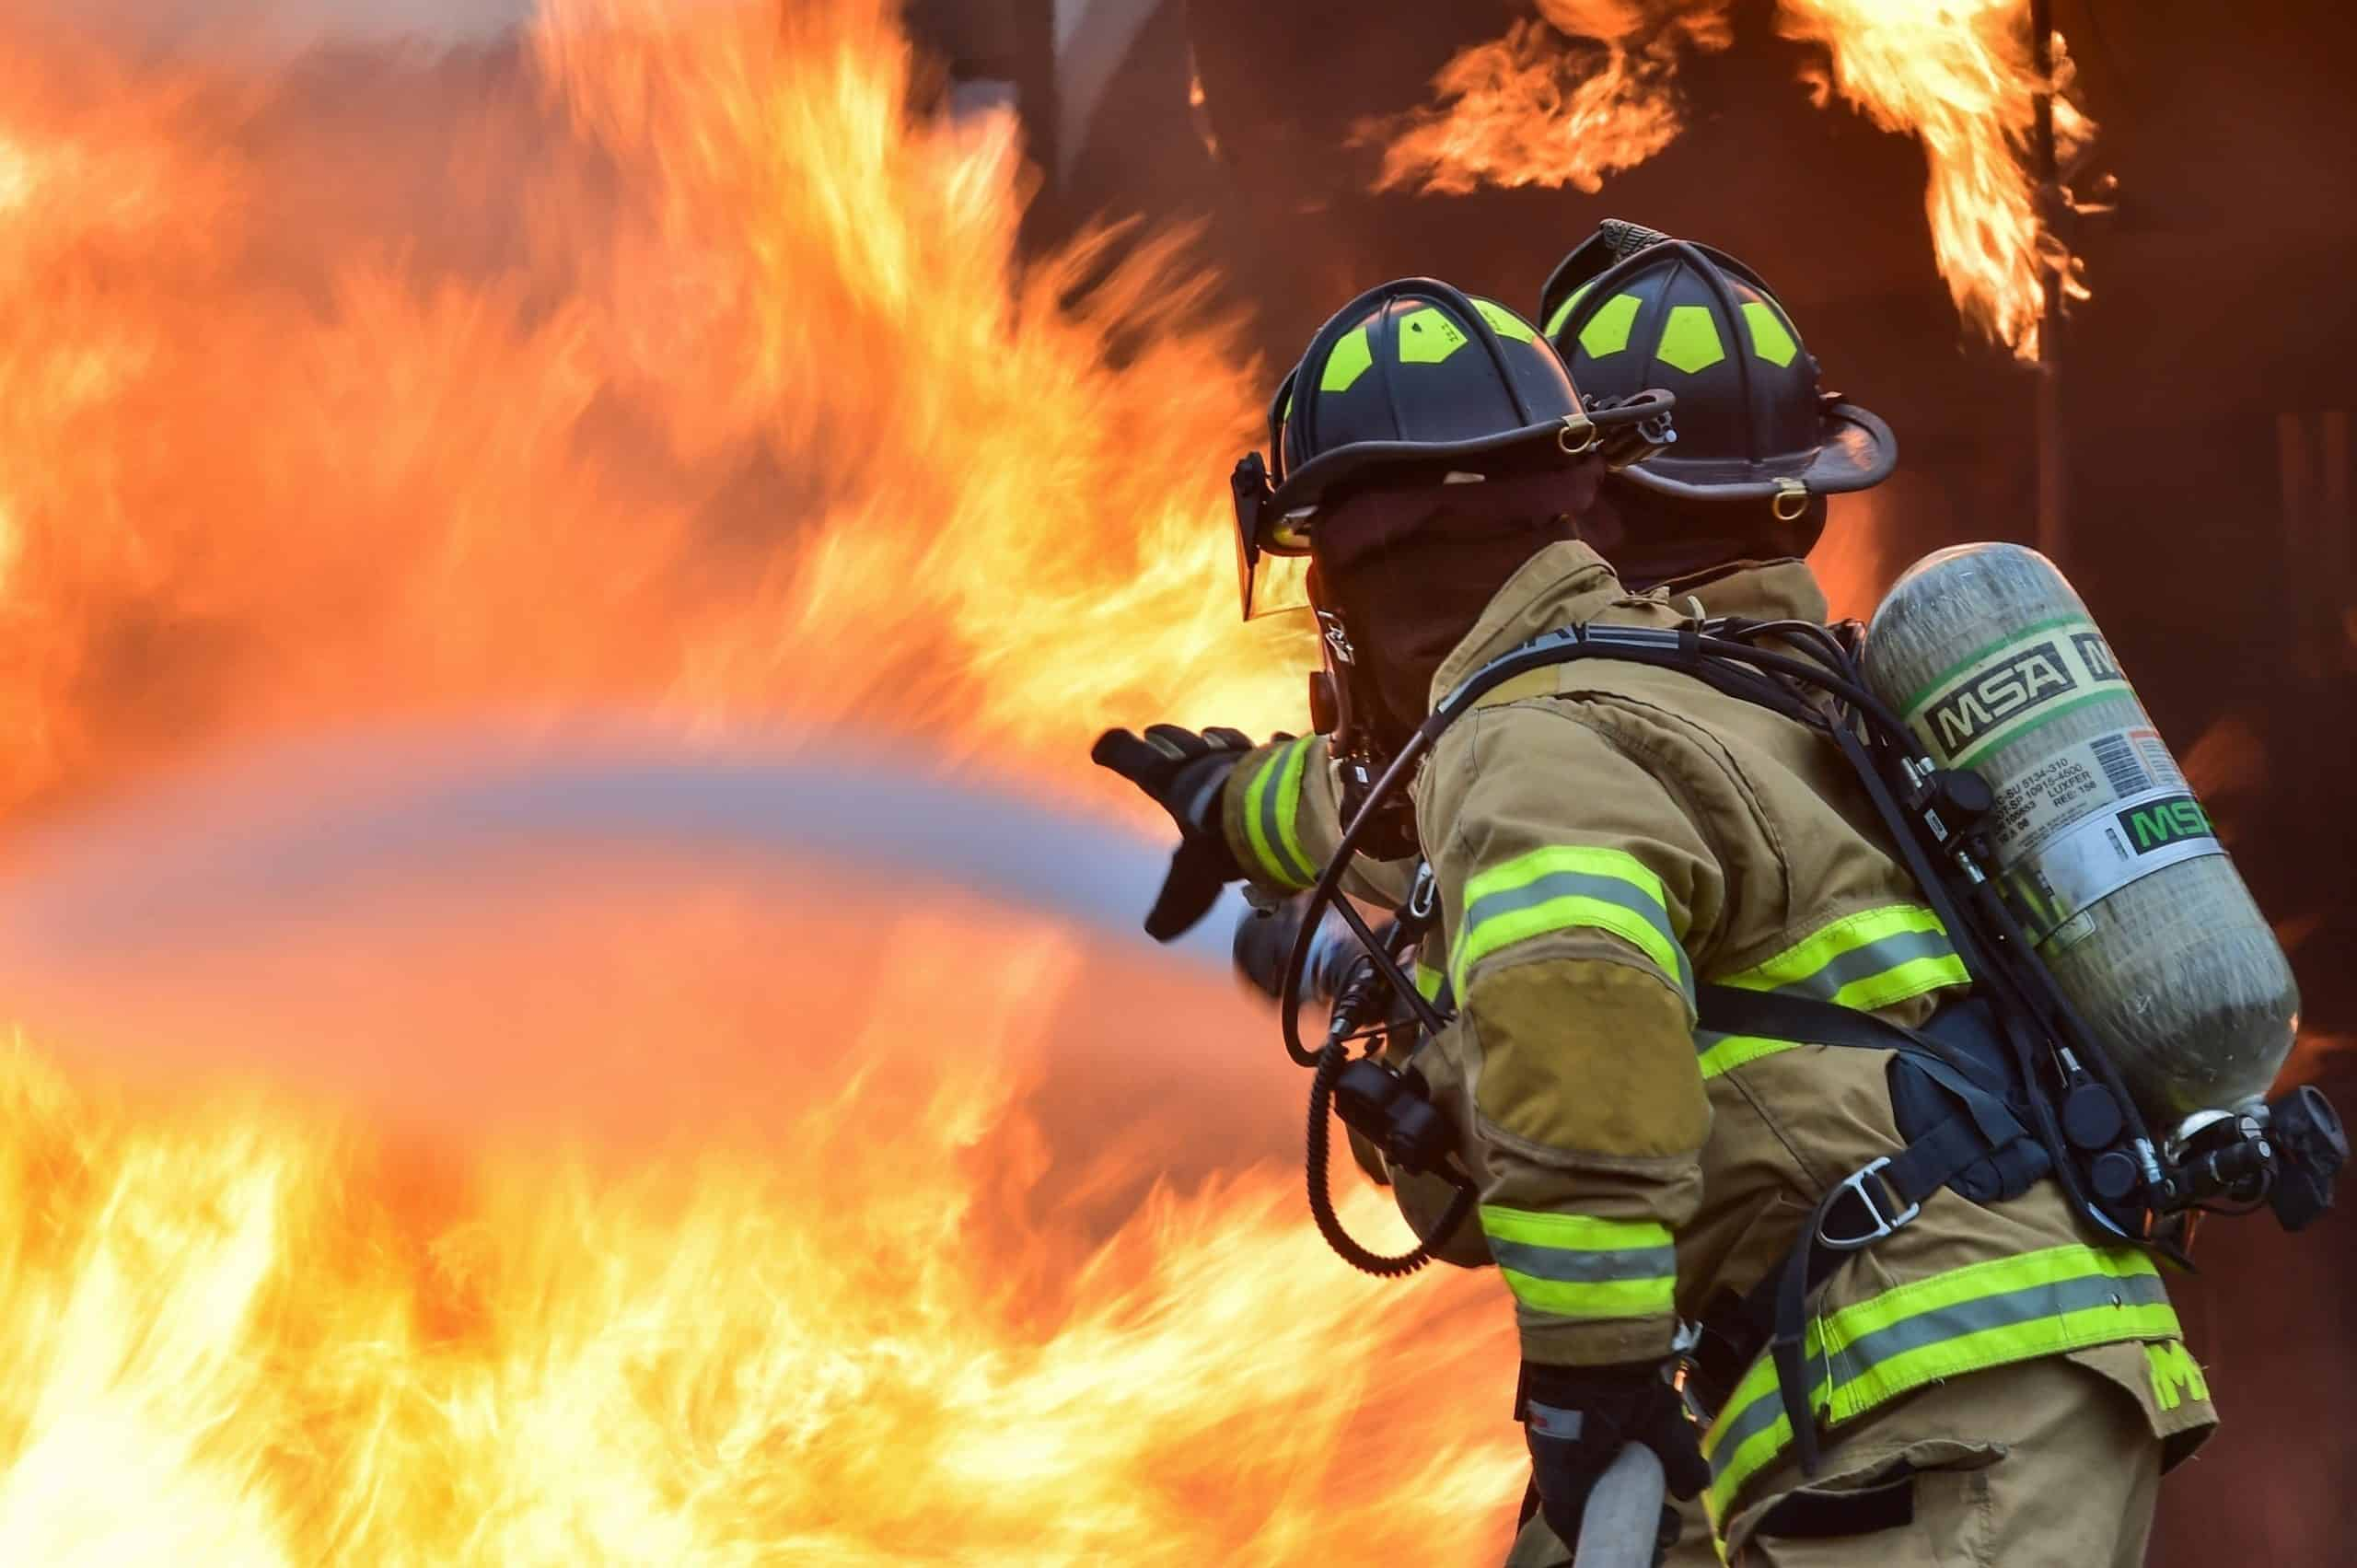 Best Disaster or Emergency Preparedness course tutorial class certification training online